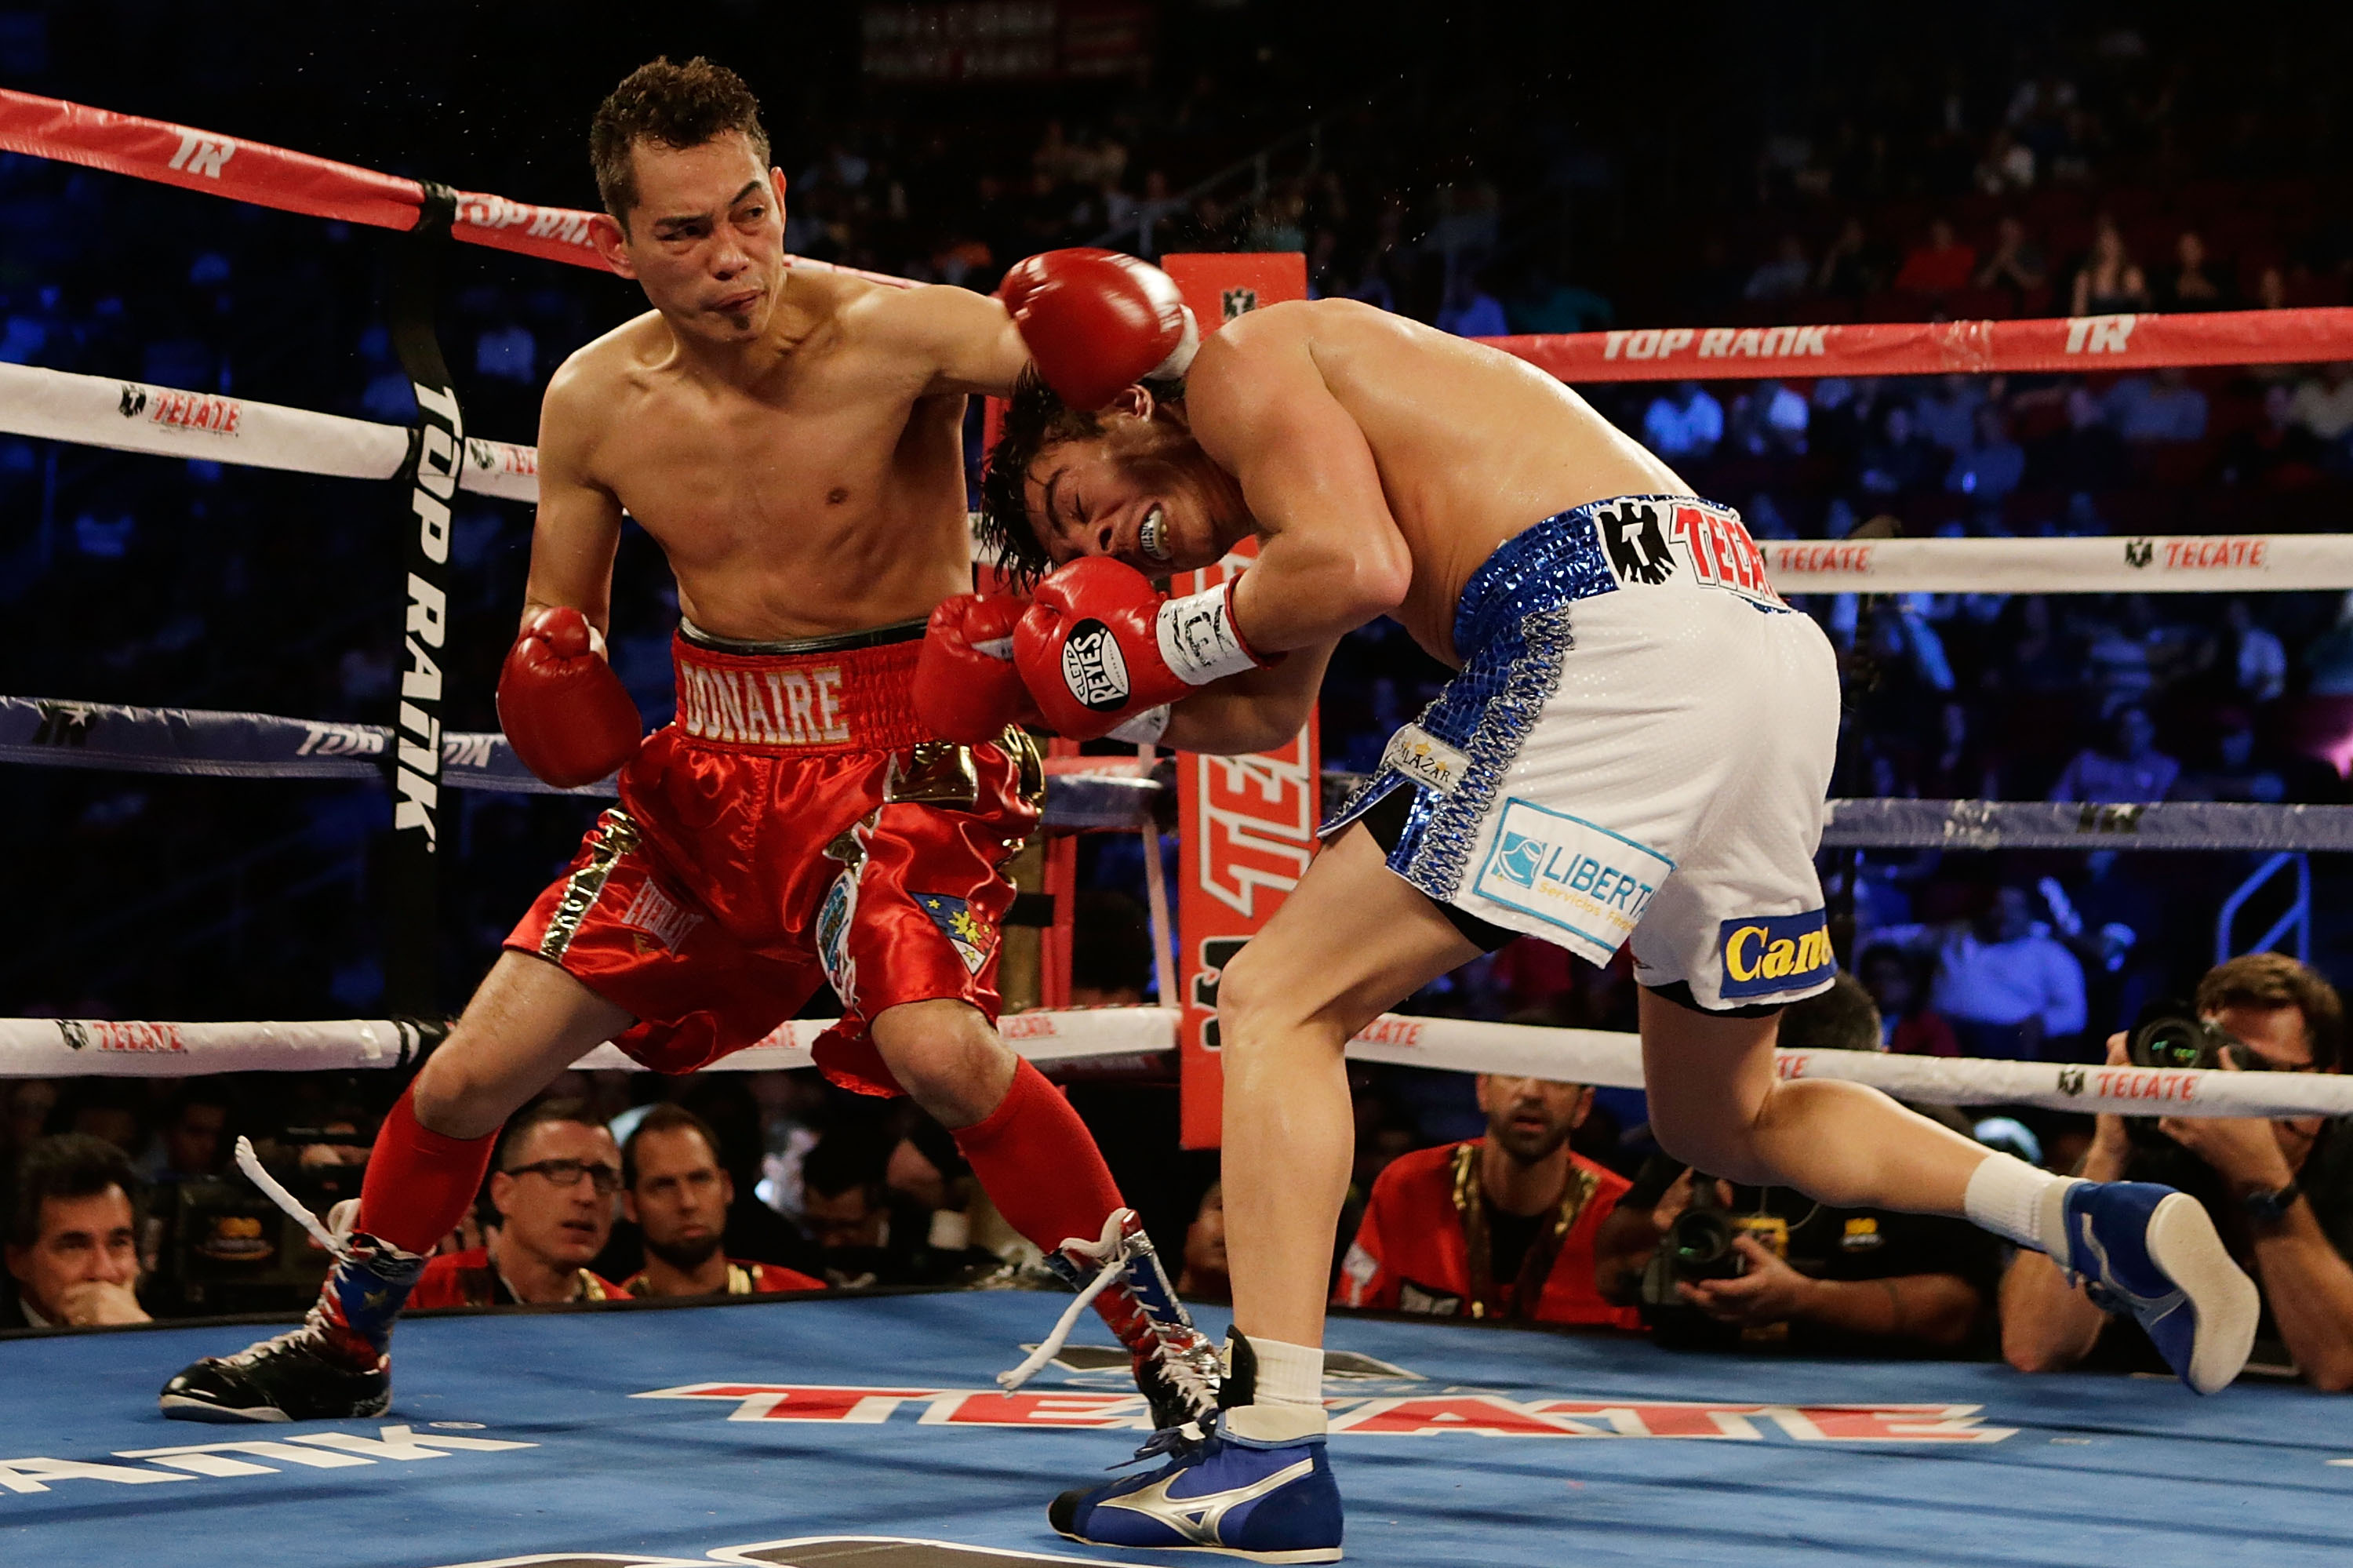 Rigondeaux vs donaire betting odds is sports betting legal in singapore